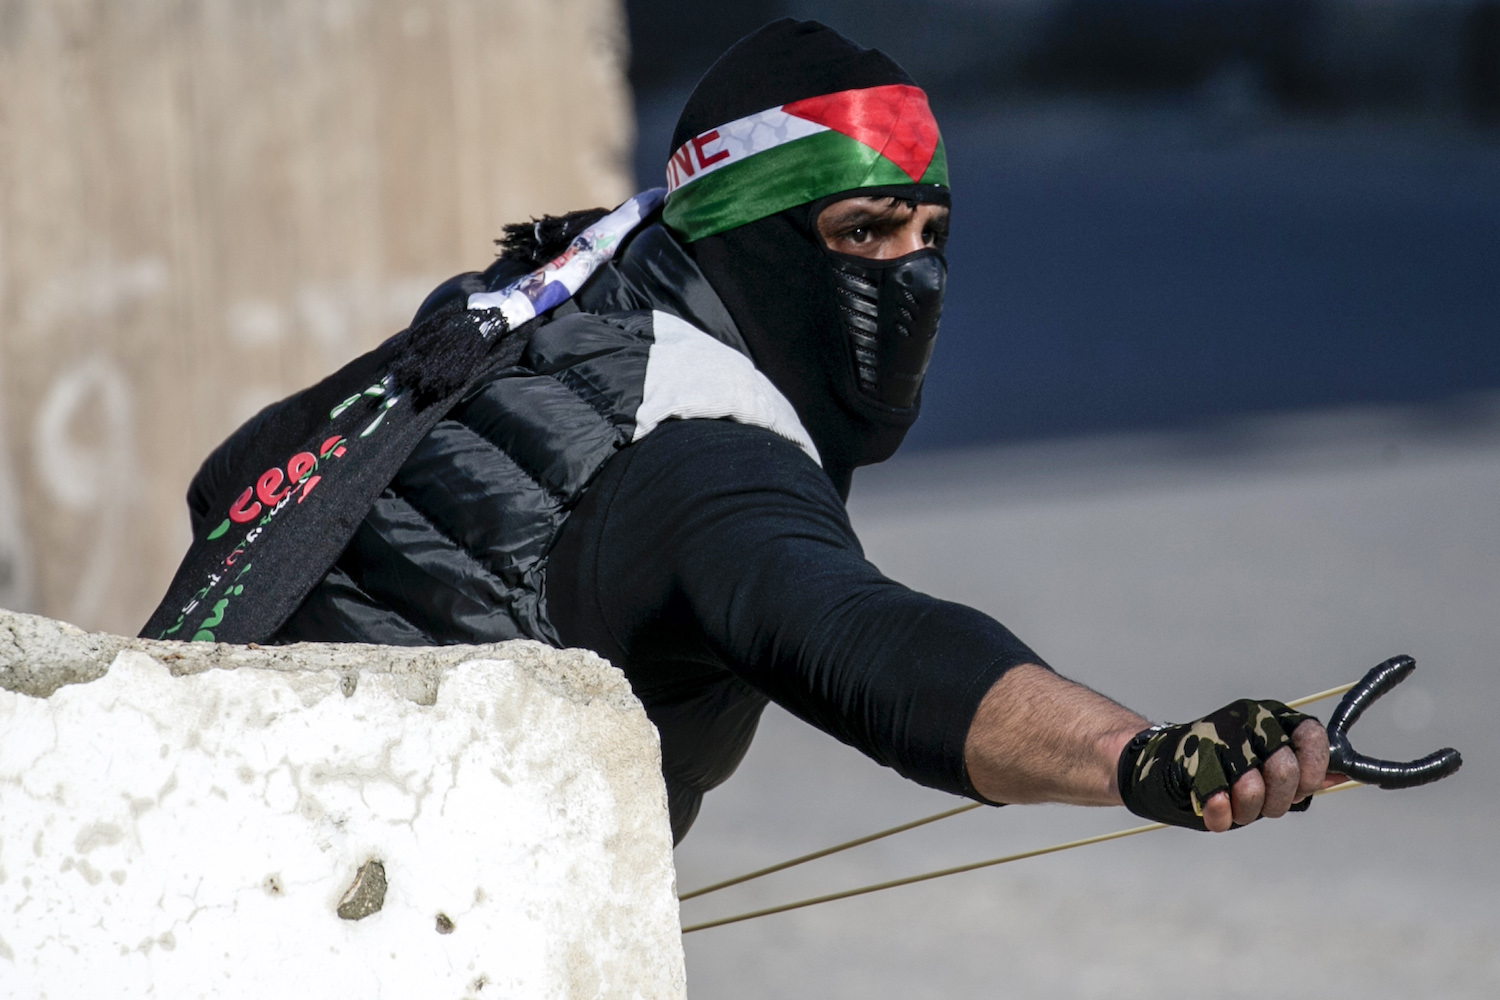 TOPSHOT - A Palestinian protester aims a slingshot during clashes with Israeli soldiers following a demonstration near the Hawara checkpoint, south of the West Bank city of Nablus on February 2, 2018.  / AFP PHOTO / JAAFAR ASHTIYEH        (Photo credit should read JAAFAR ASHTIYEH/AFP/Getty Images)